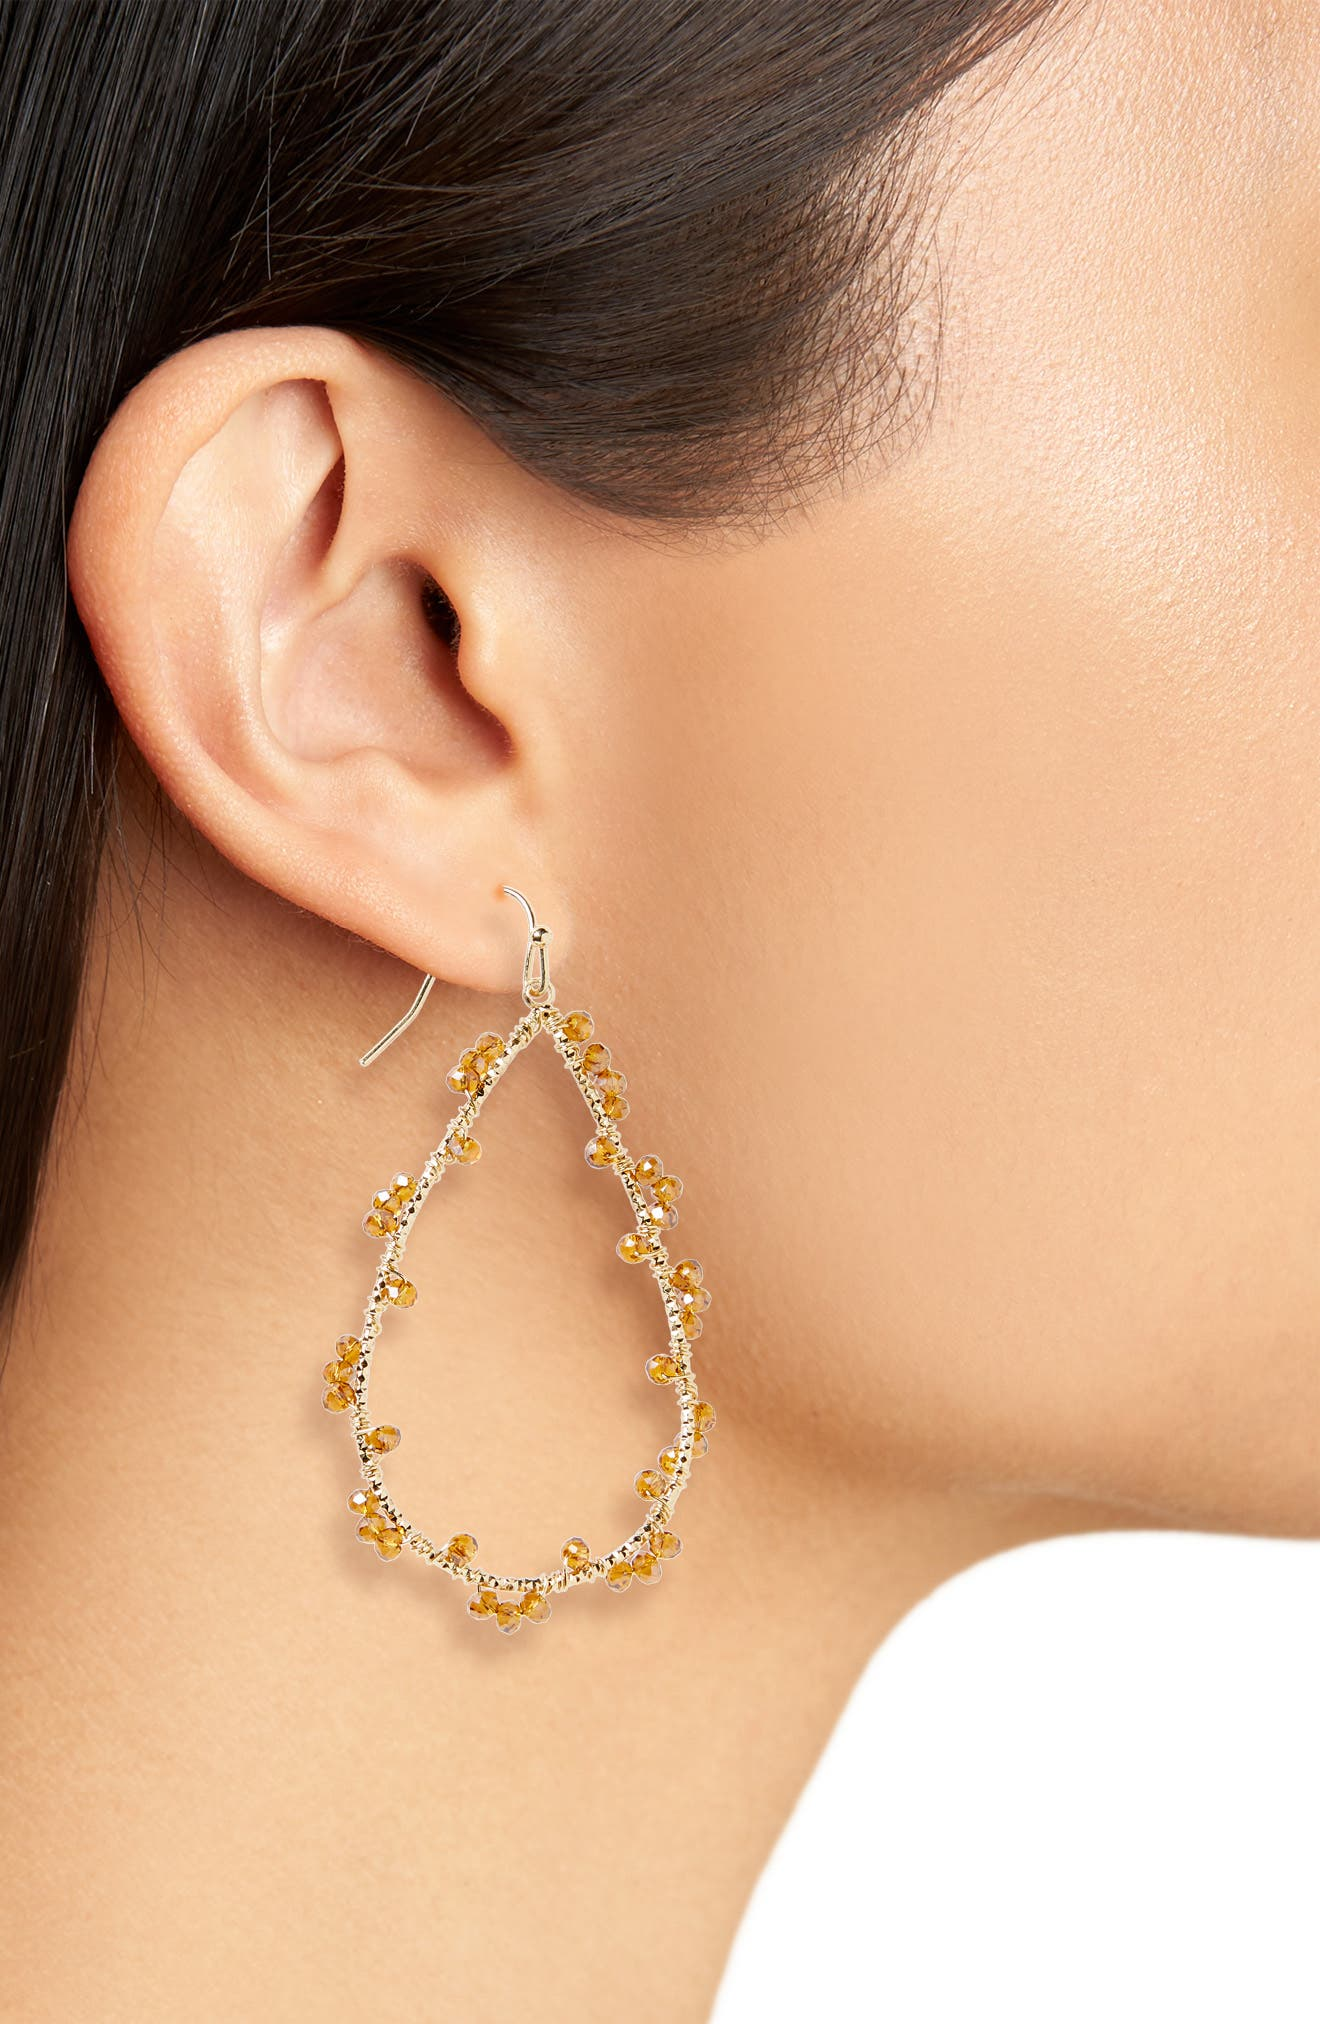 Wired Glass Bead Teardrop Earrings,                             Alternate thumbnail 2, color,                             Champagne